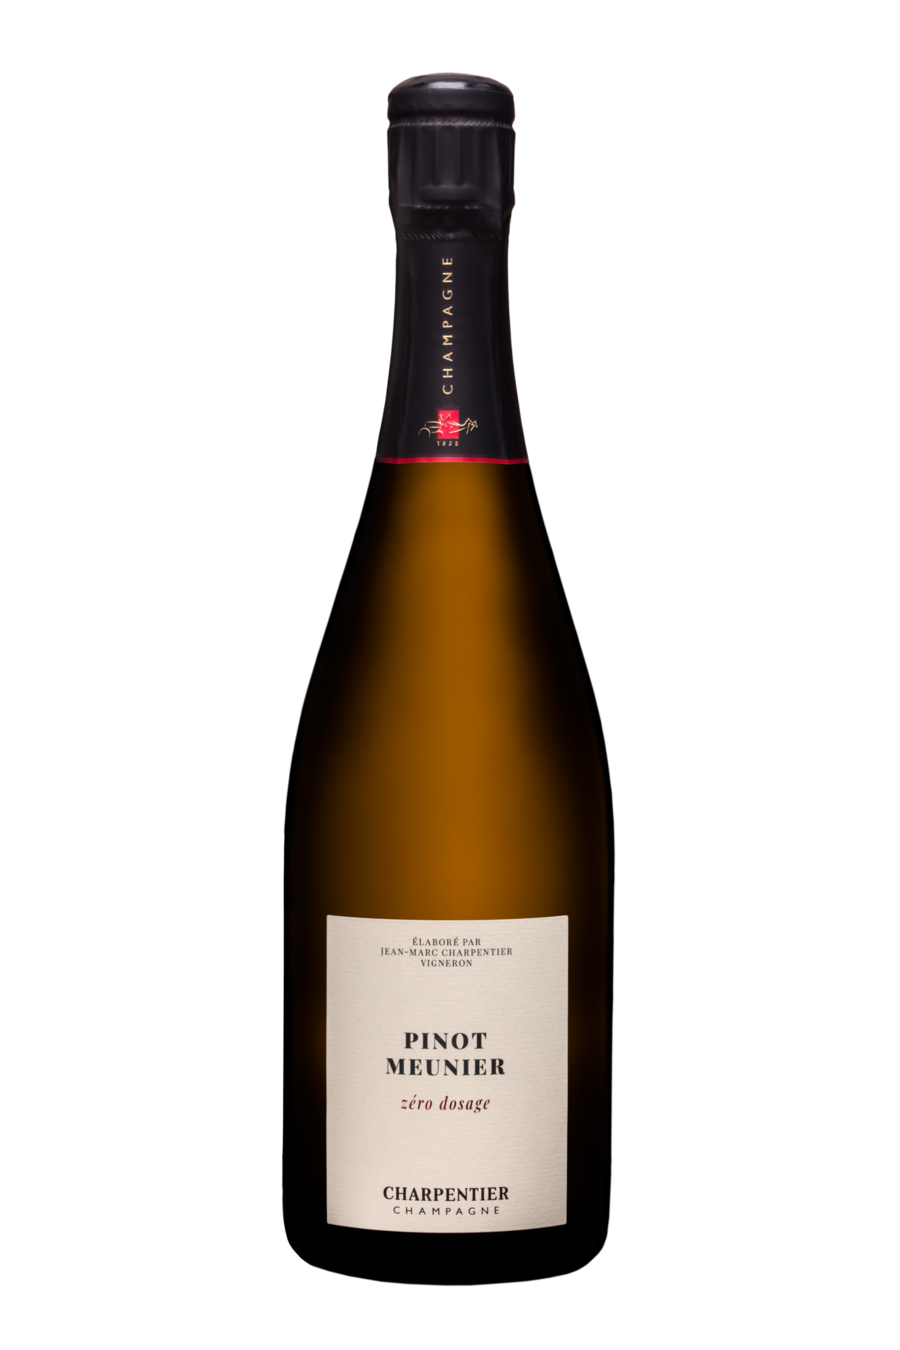 Champagne-Charpentier-(Charly-Sur-Marne)-Pinot-Meunier-Zéro-Dosage-1